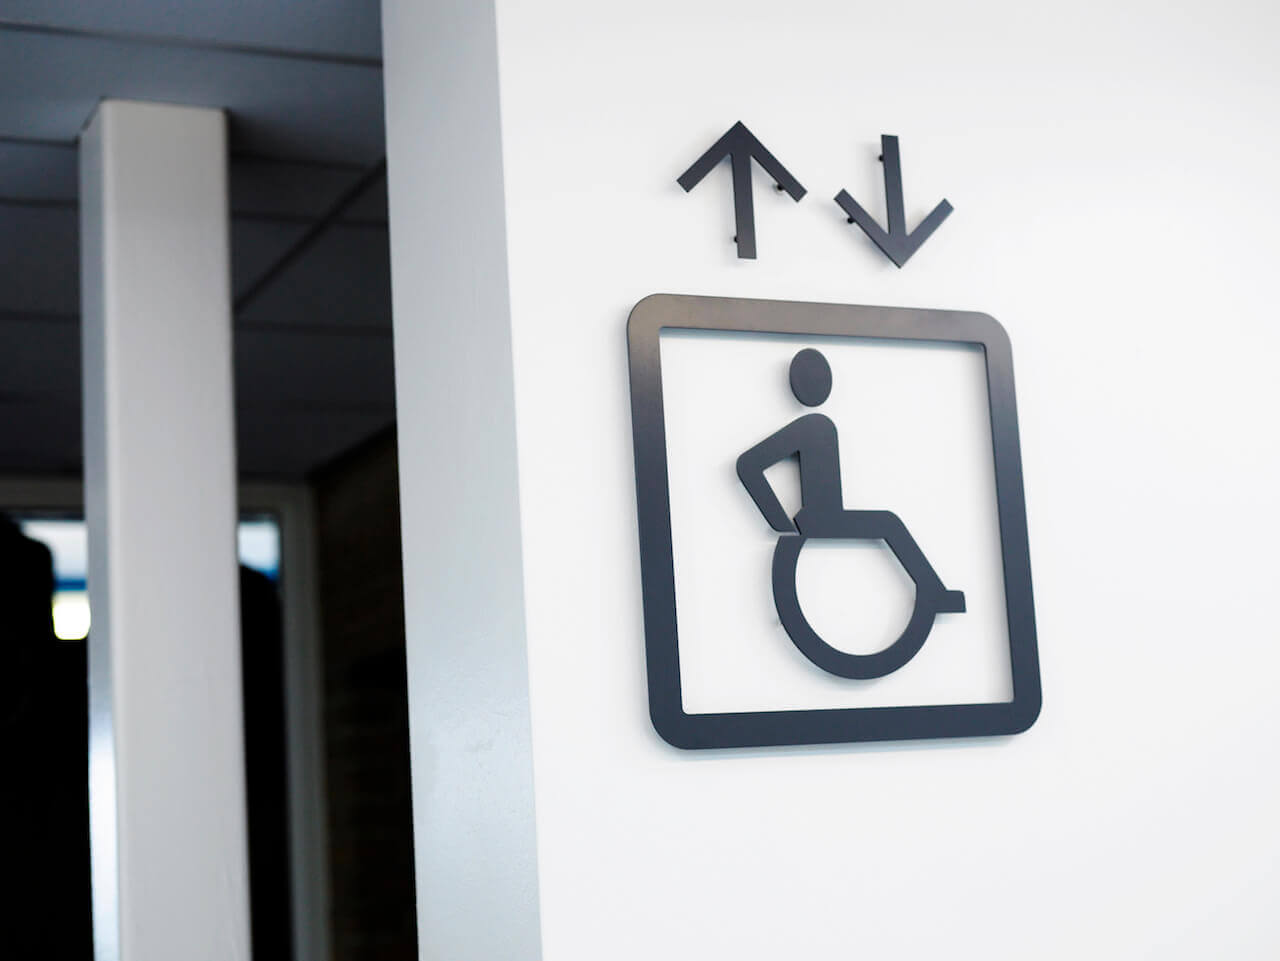 Cut out pictogram graphics indicate wheelchair accessible lifts